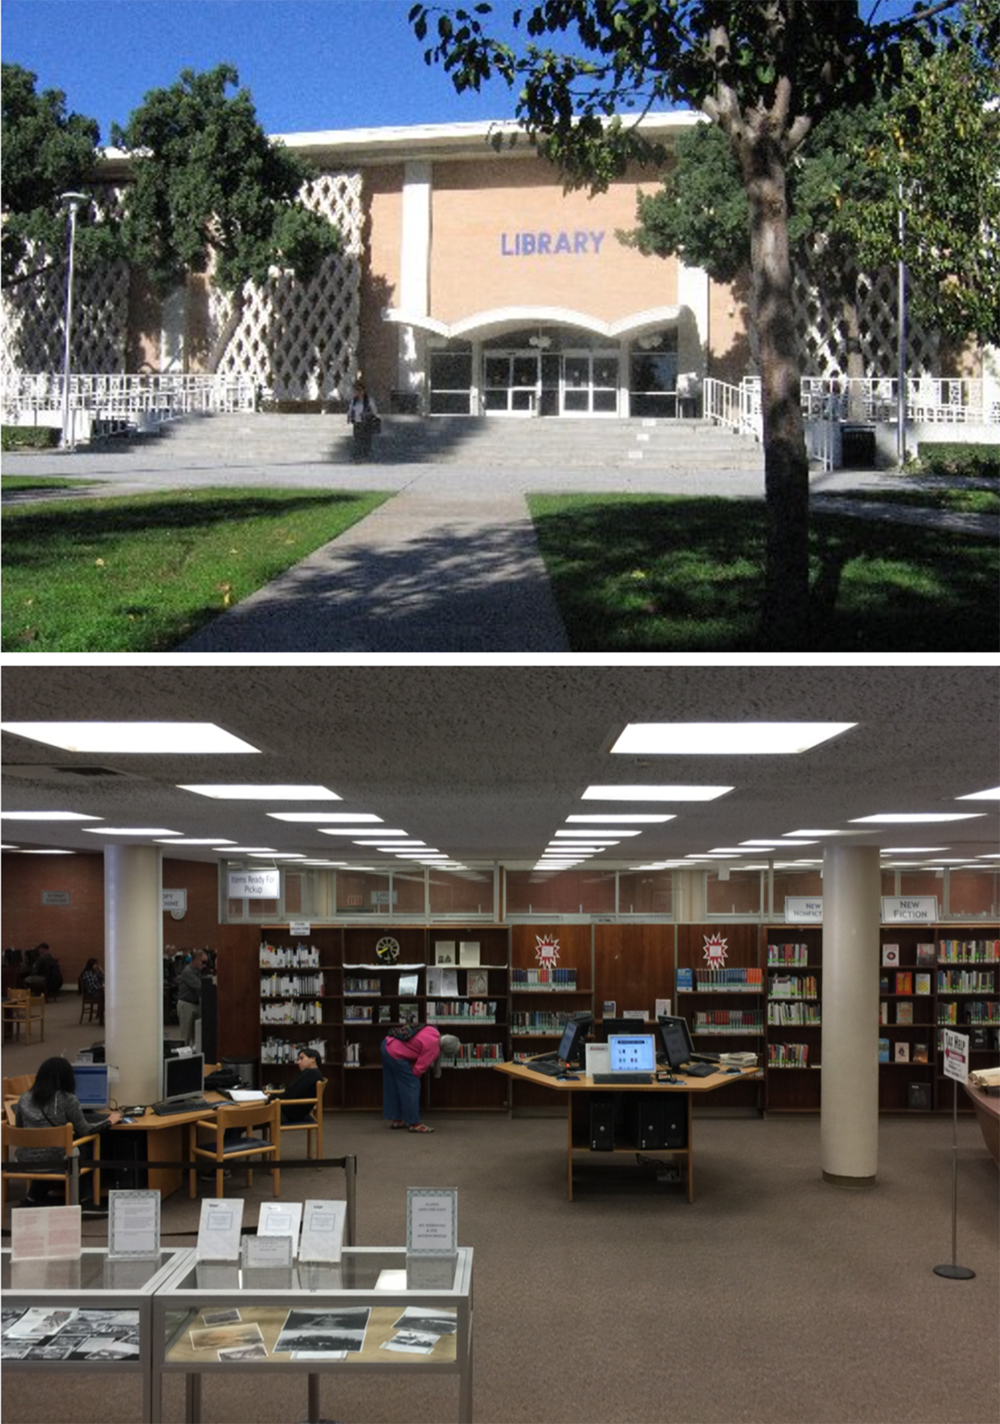 MIDCENTURY LIBRARY The 1970s era Manhattan Beach library had one window and no relationship with its setting which includes the city's civic center, the commercial core of downtown Manhattan Beach and to the west the Santa Monica bay and Pacific Ocean.